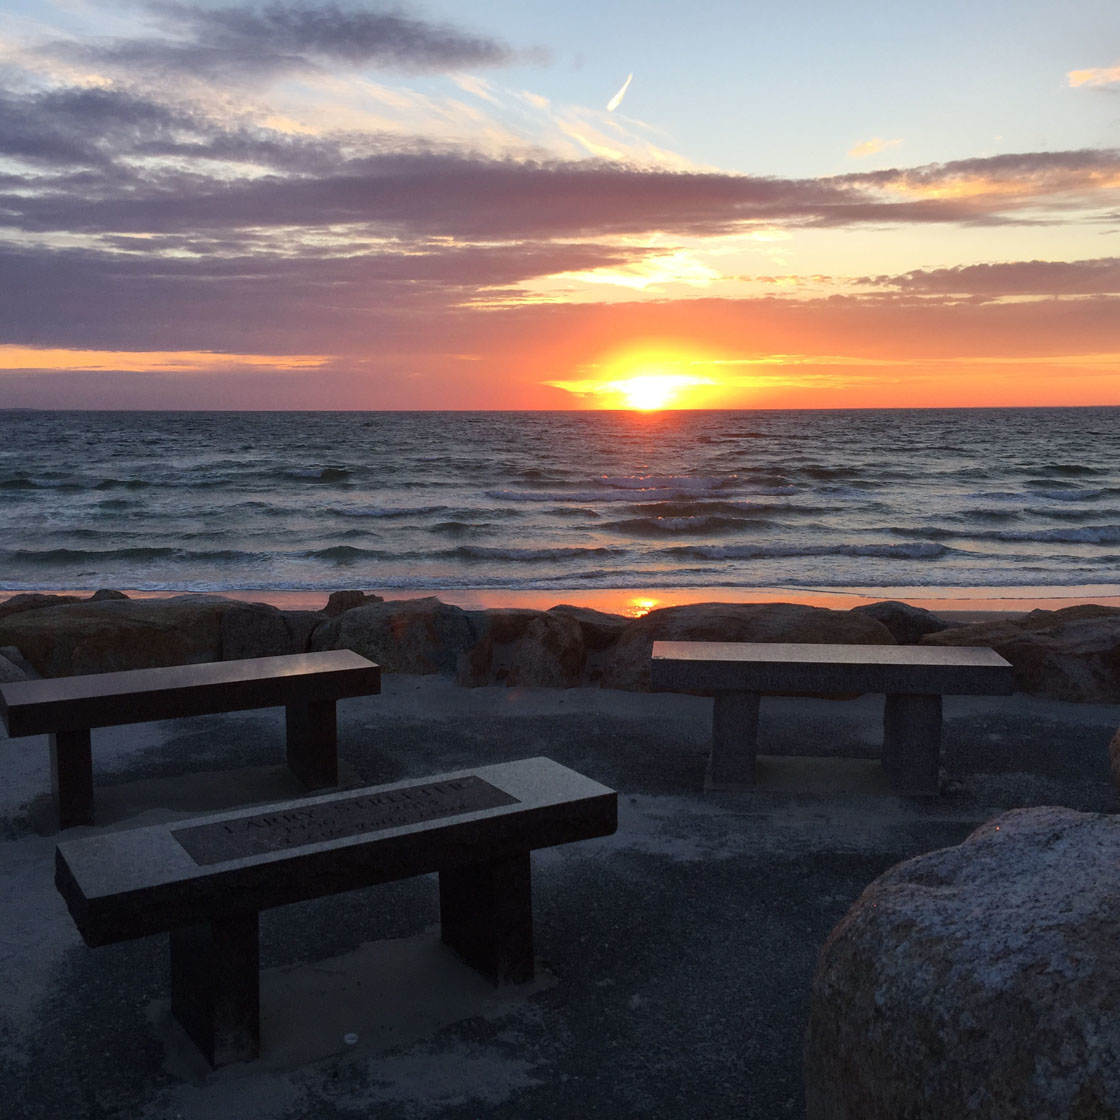 8 Tips For Creating Stunning Iphone Sunset Photos